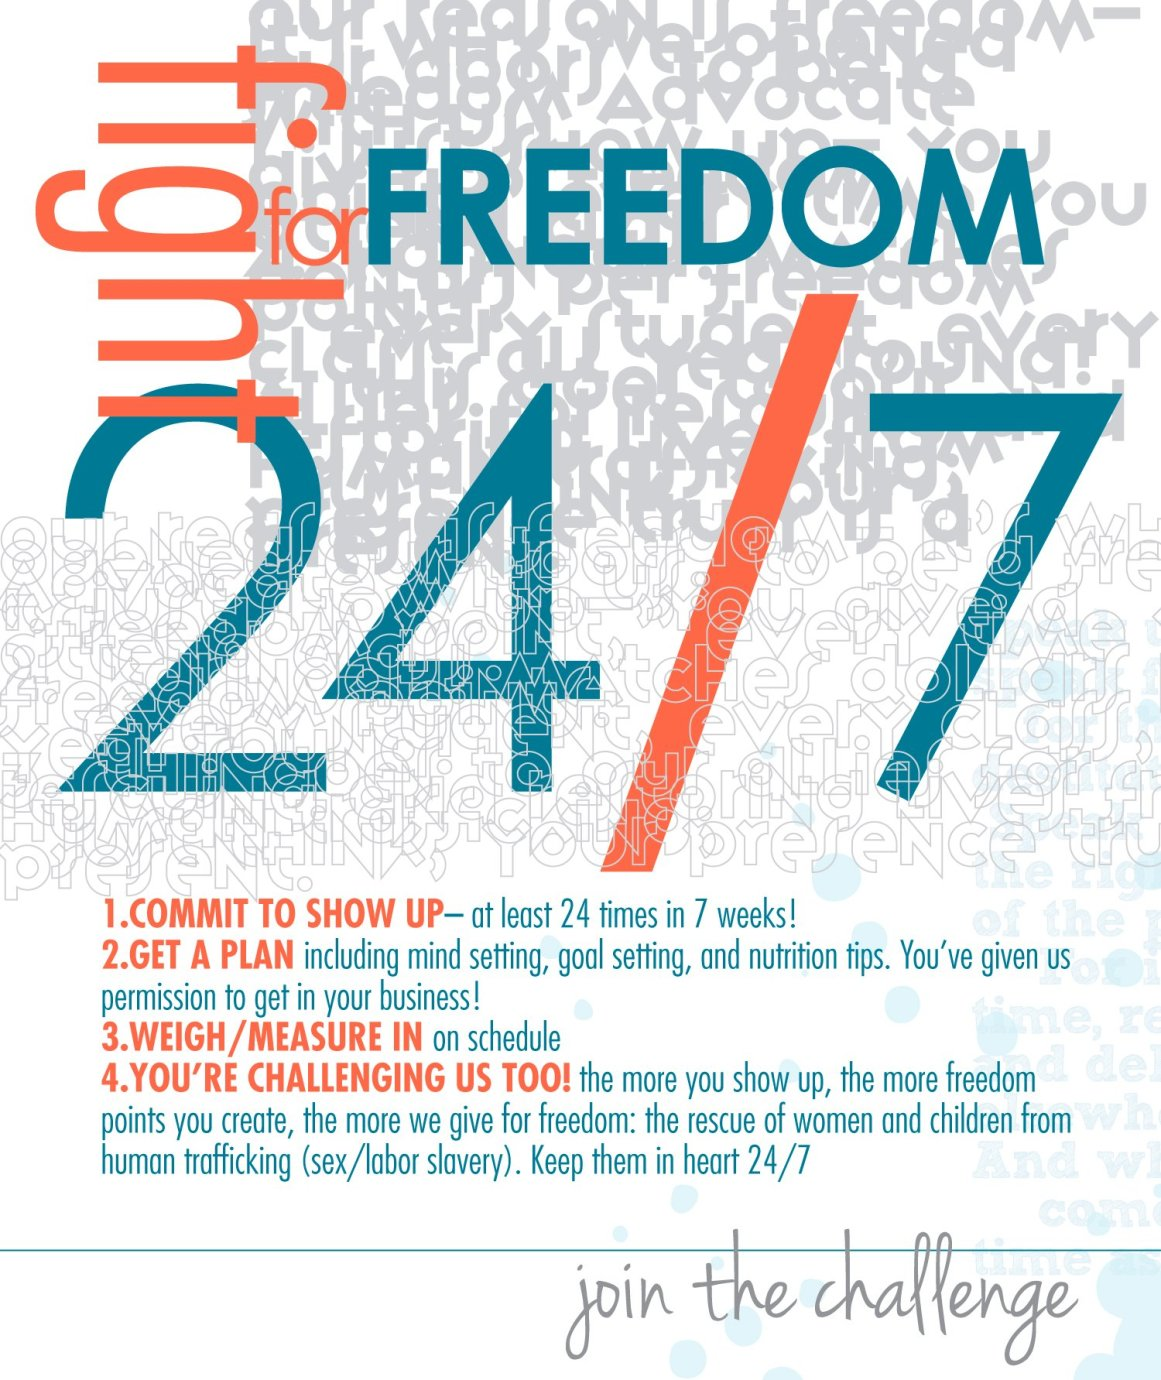 Fight for FREEDOM 24/7. Sign the declaration, and bring it ON!